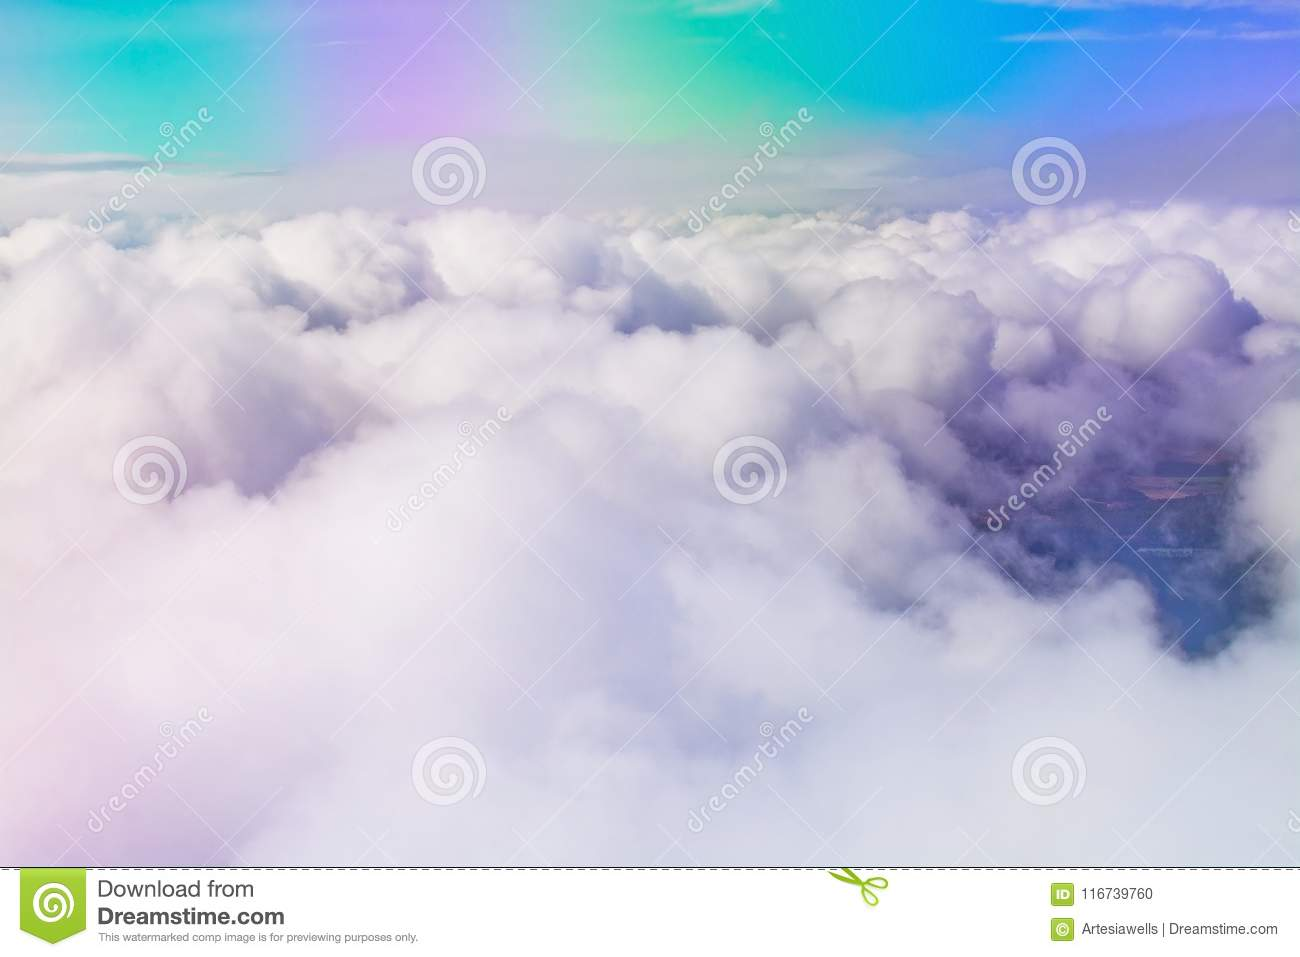 Flight images with clouds